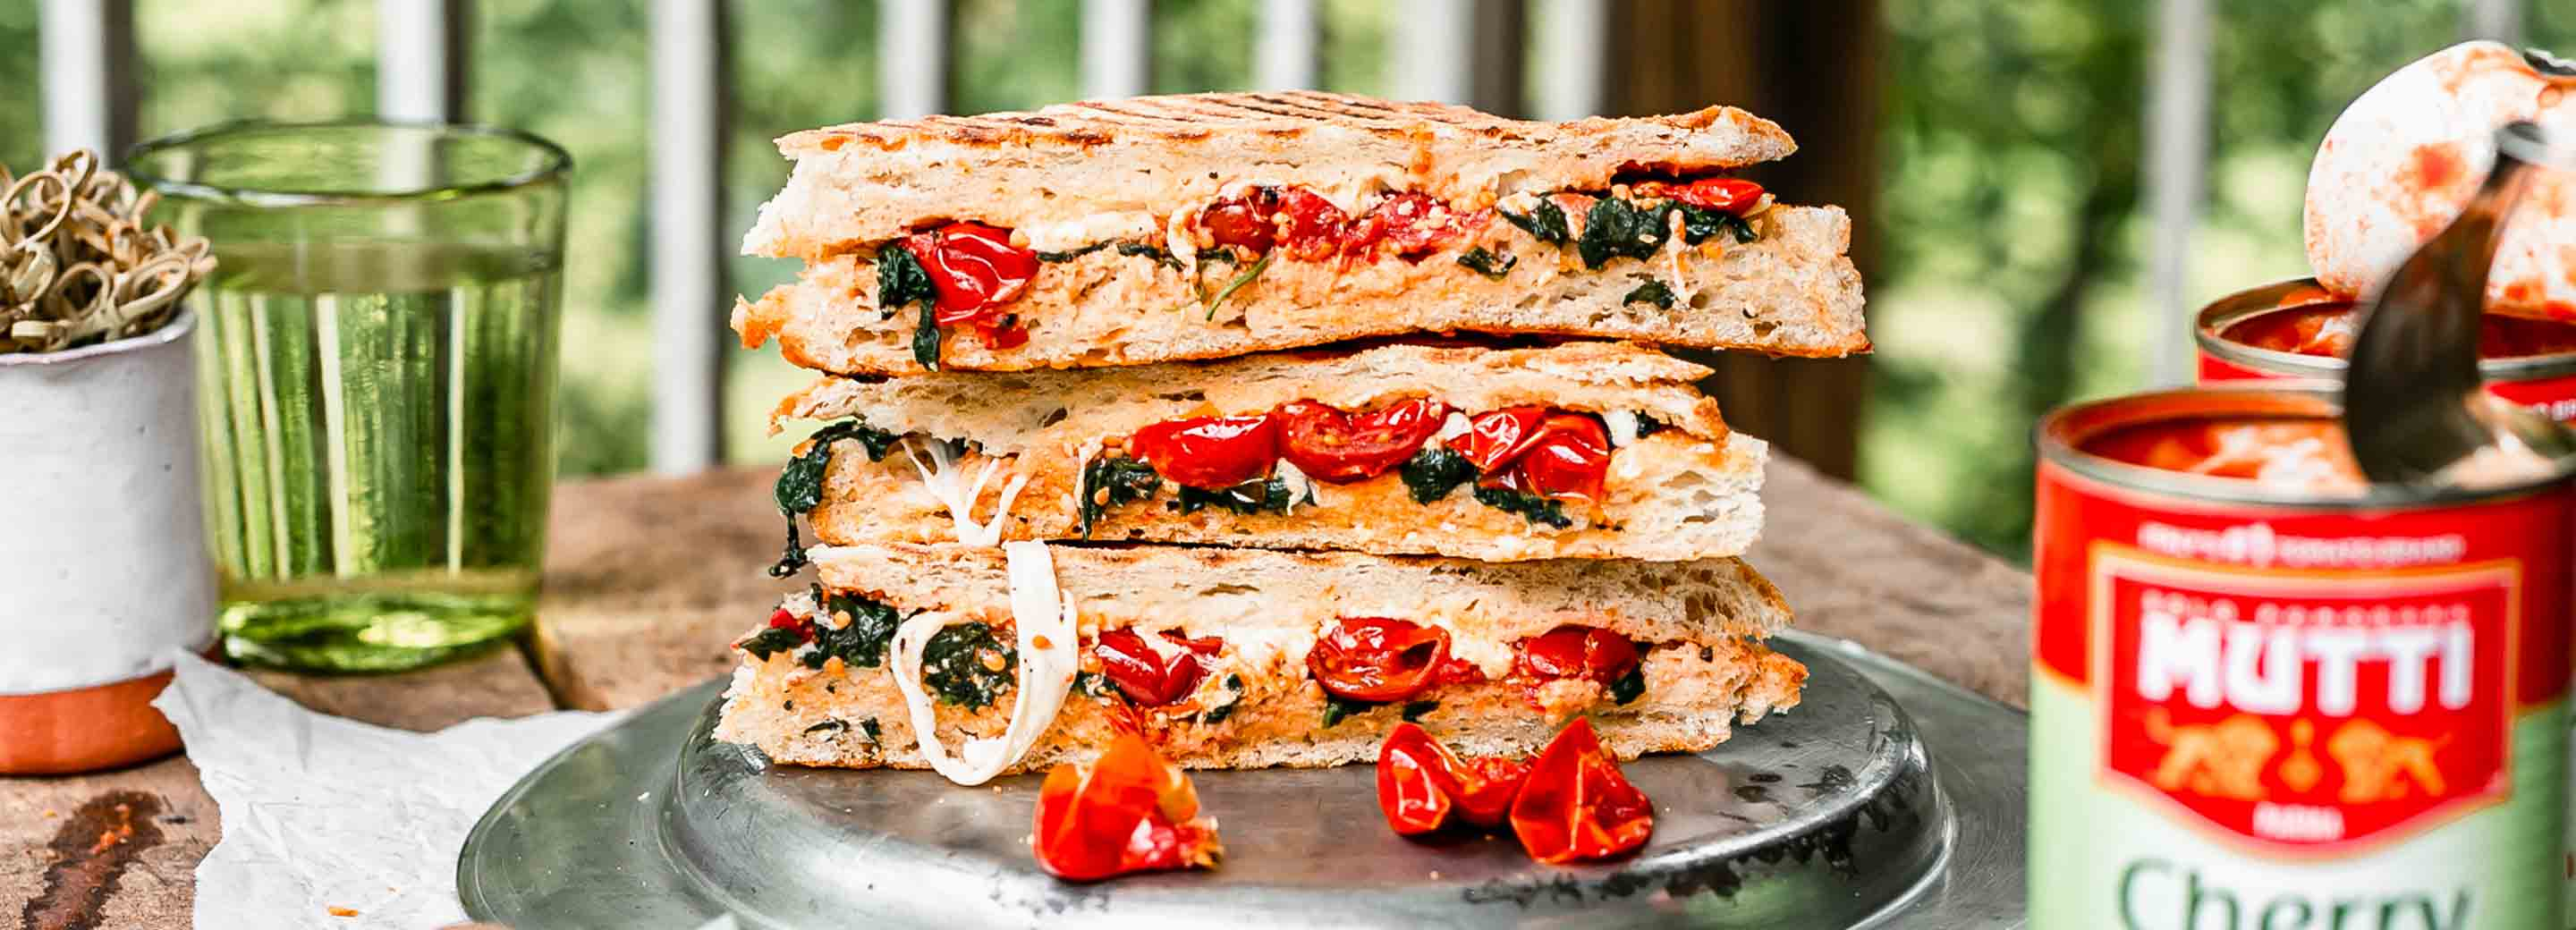 Cherry Tomato & Spinach Panini with Burrata